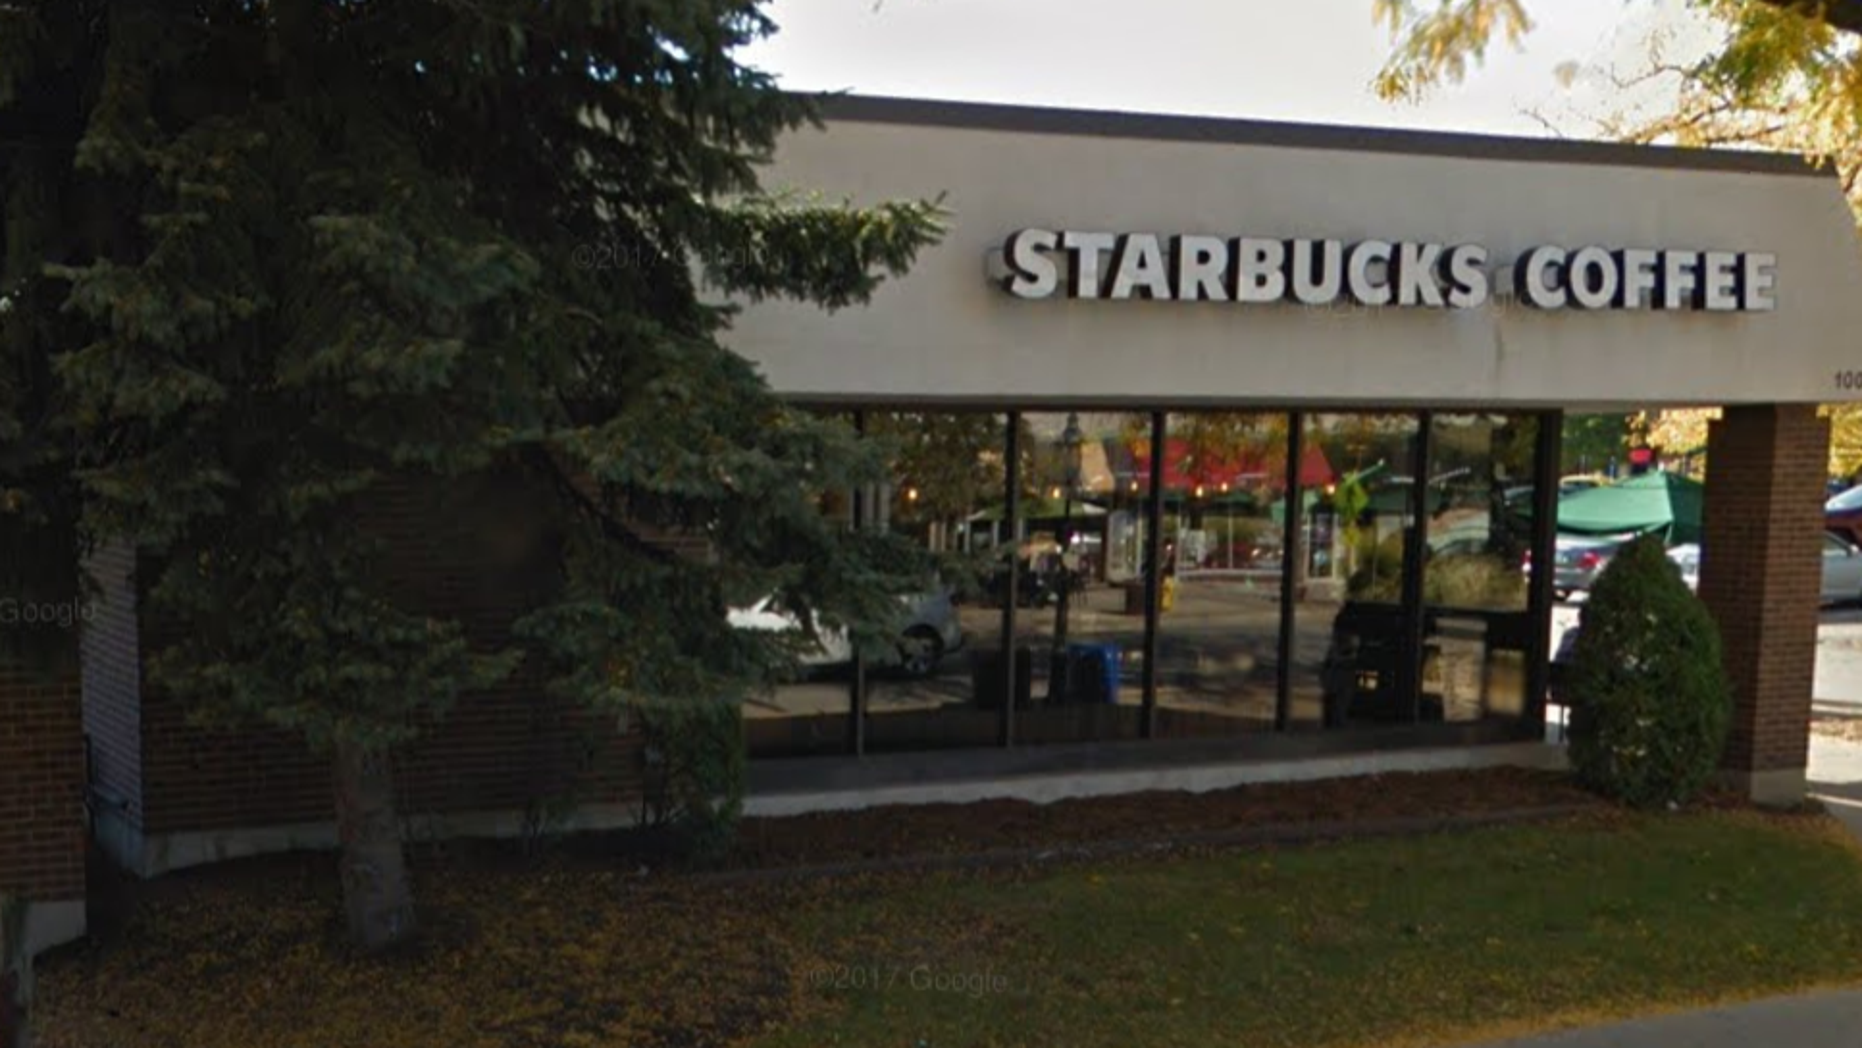 Two men got into an argument over an incorrect drink order at a Park Ridge, Ill. Starbucks on Sunday, June 19, 2017. One of the men was stabbed.